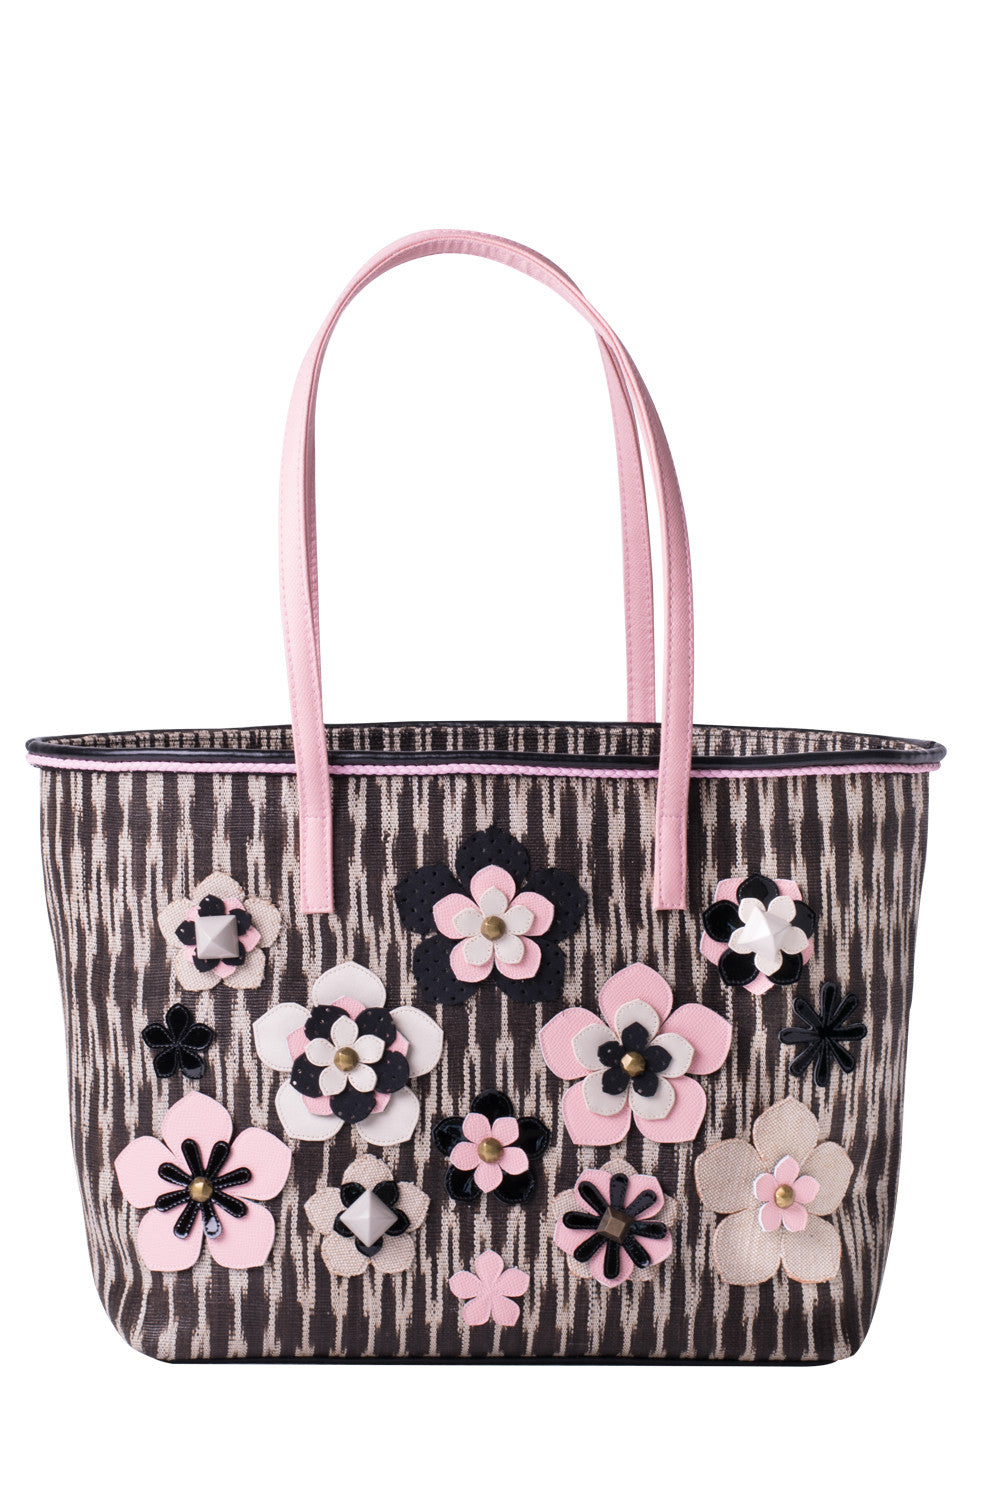 TINALAK Tote in Black with Pink Flowers